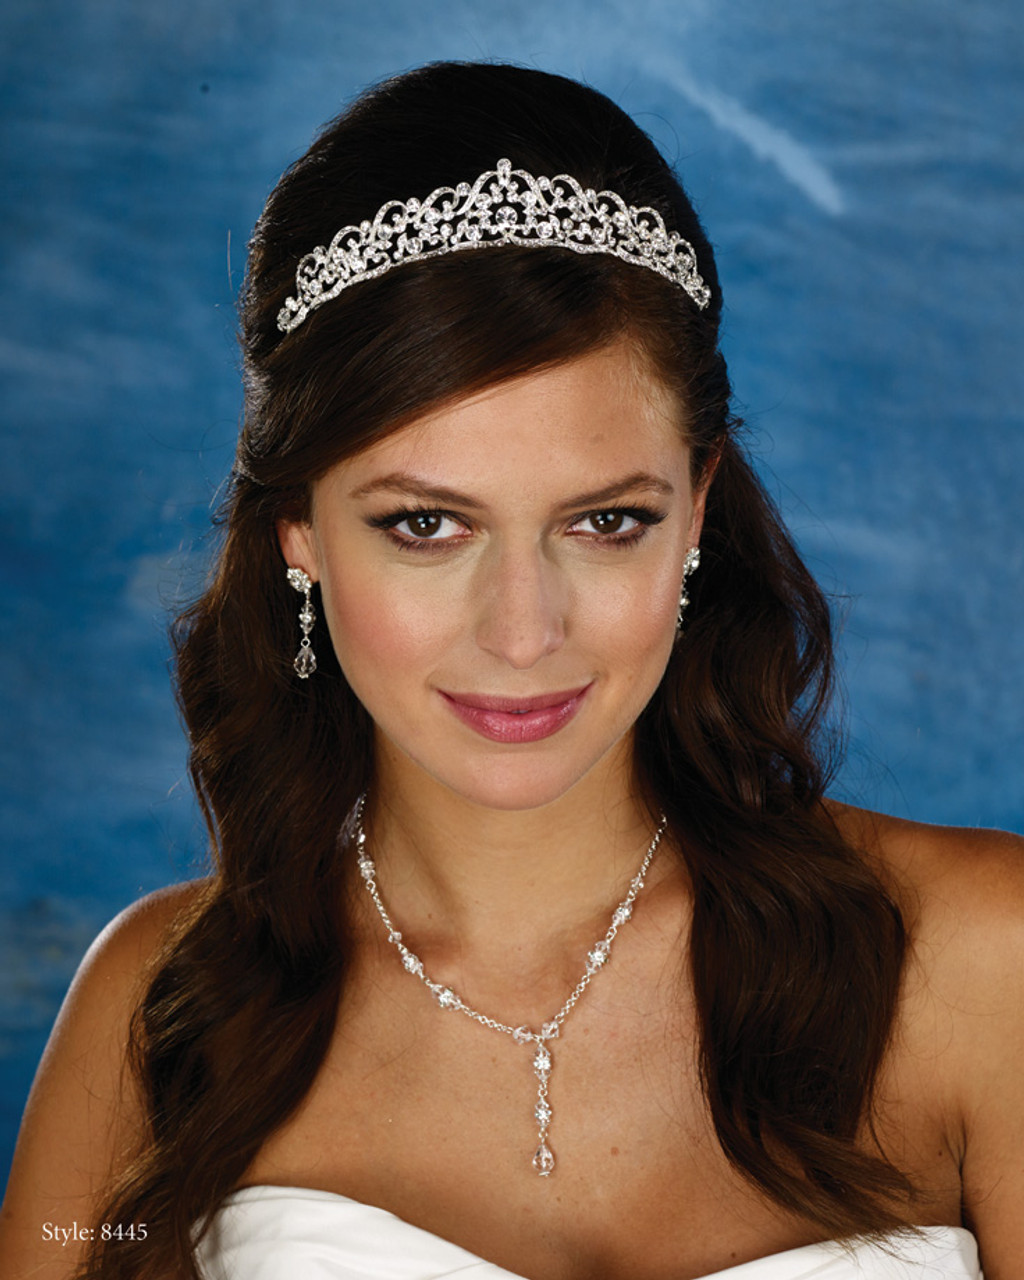 spyke hair style marionat bridal headpieces style 8445 marionat collection 8445